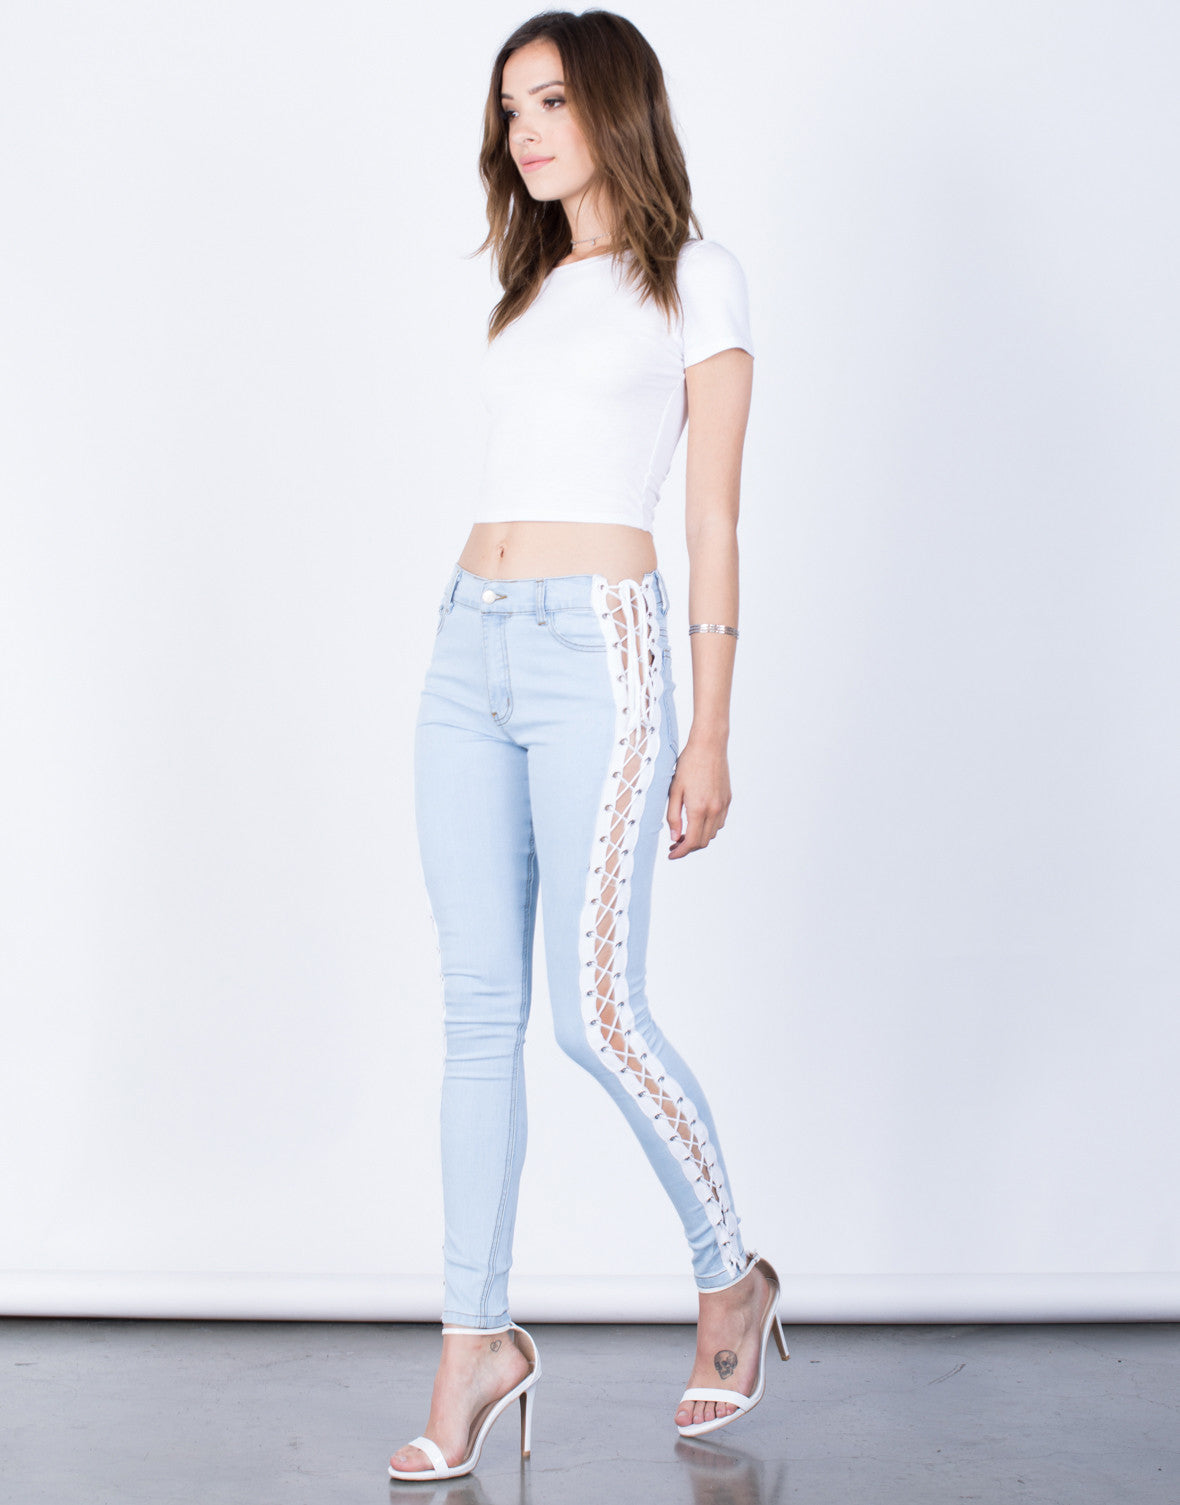 Side View of Tied Together Jeans